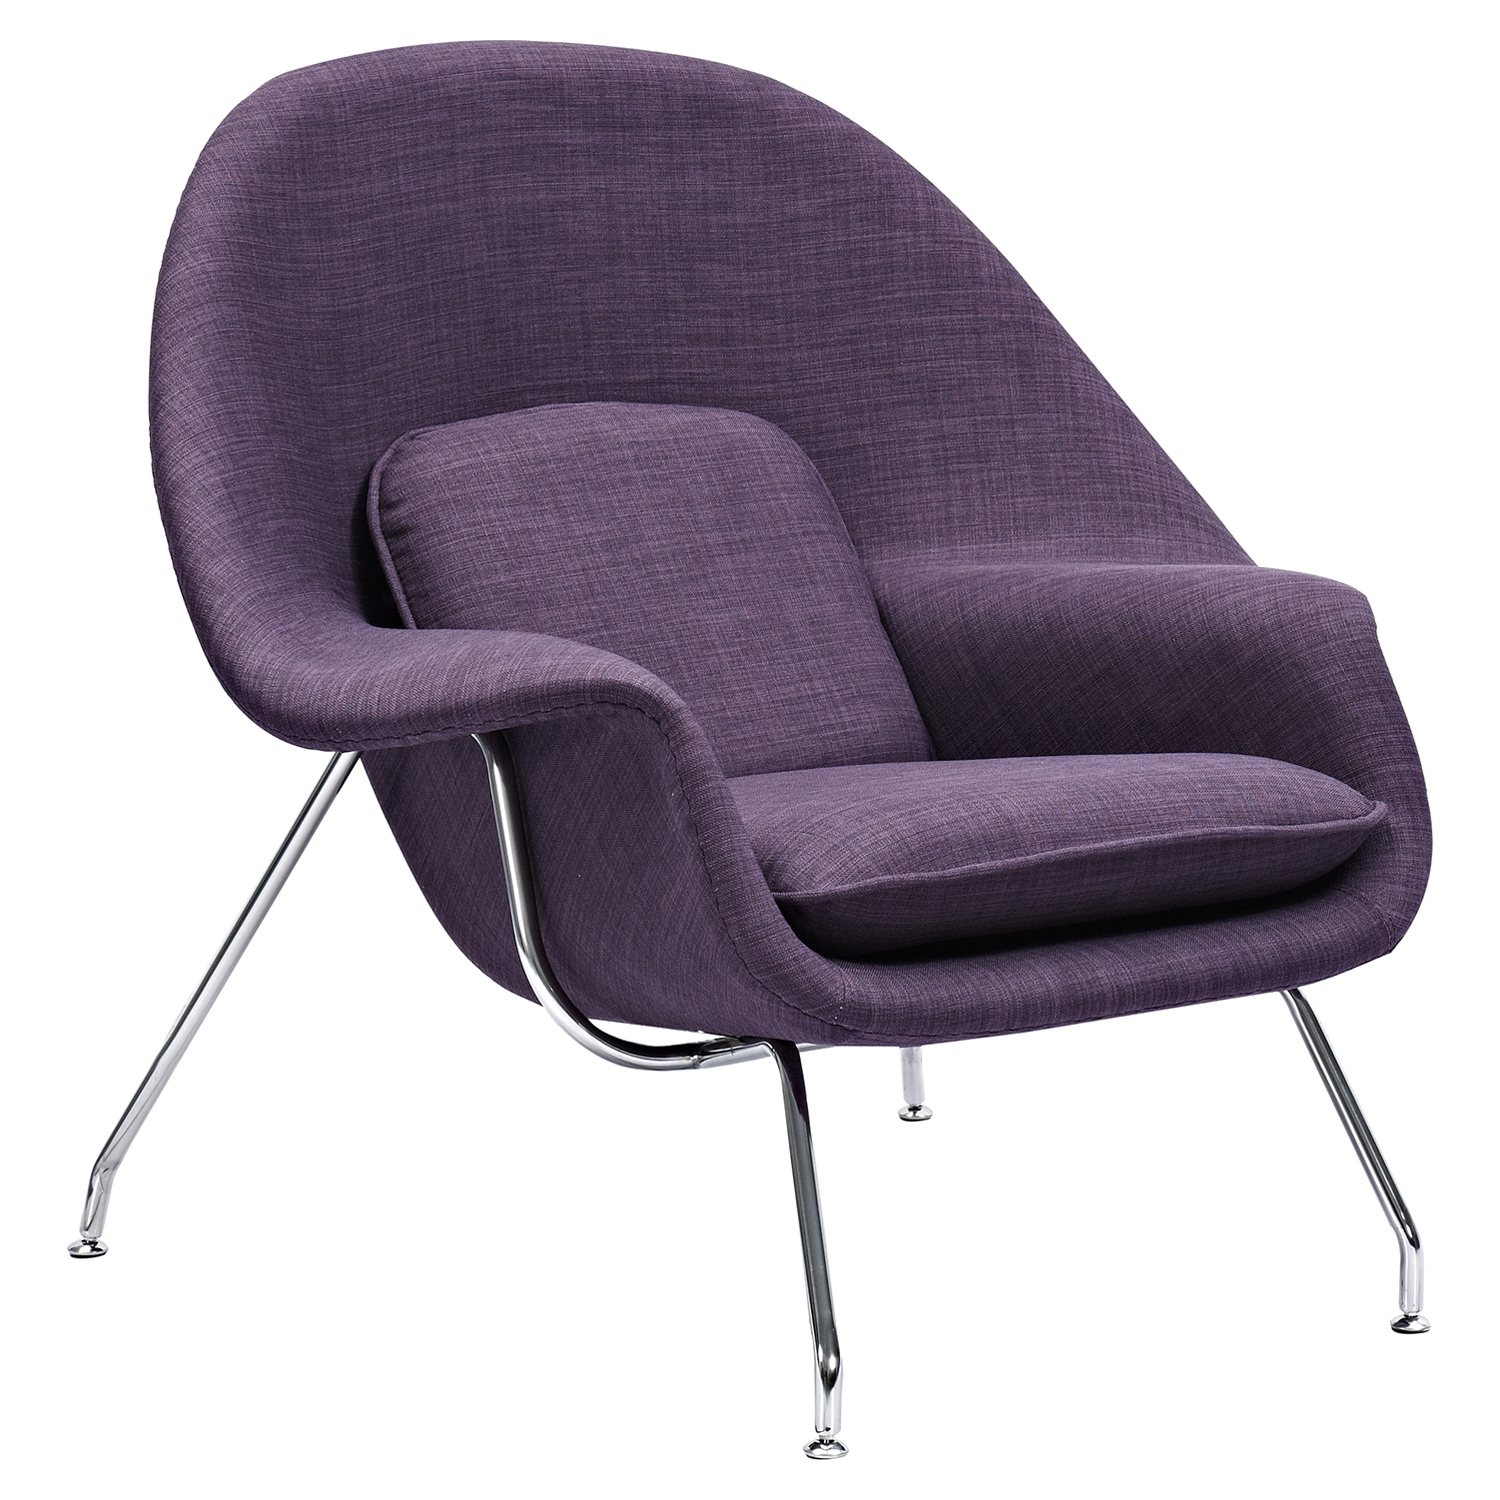 Saro Upholstered Chair - Plum Purple - NYEK-225506